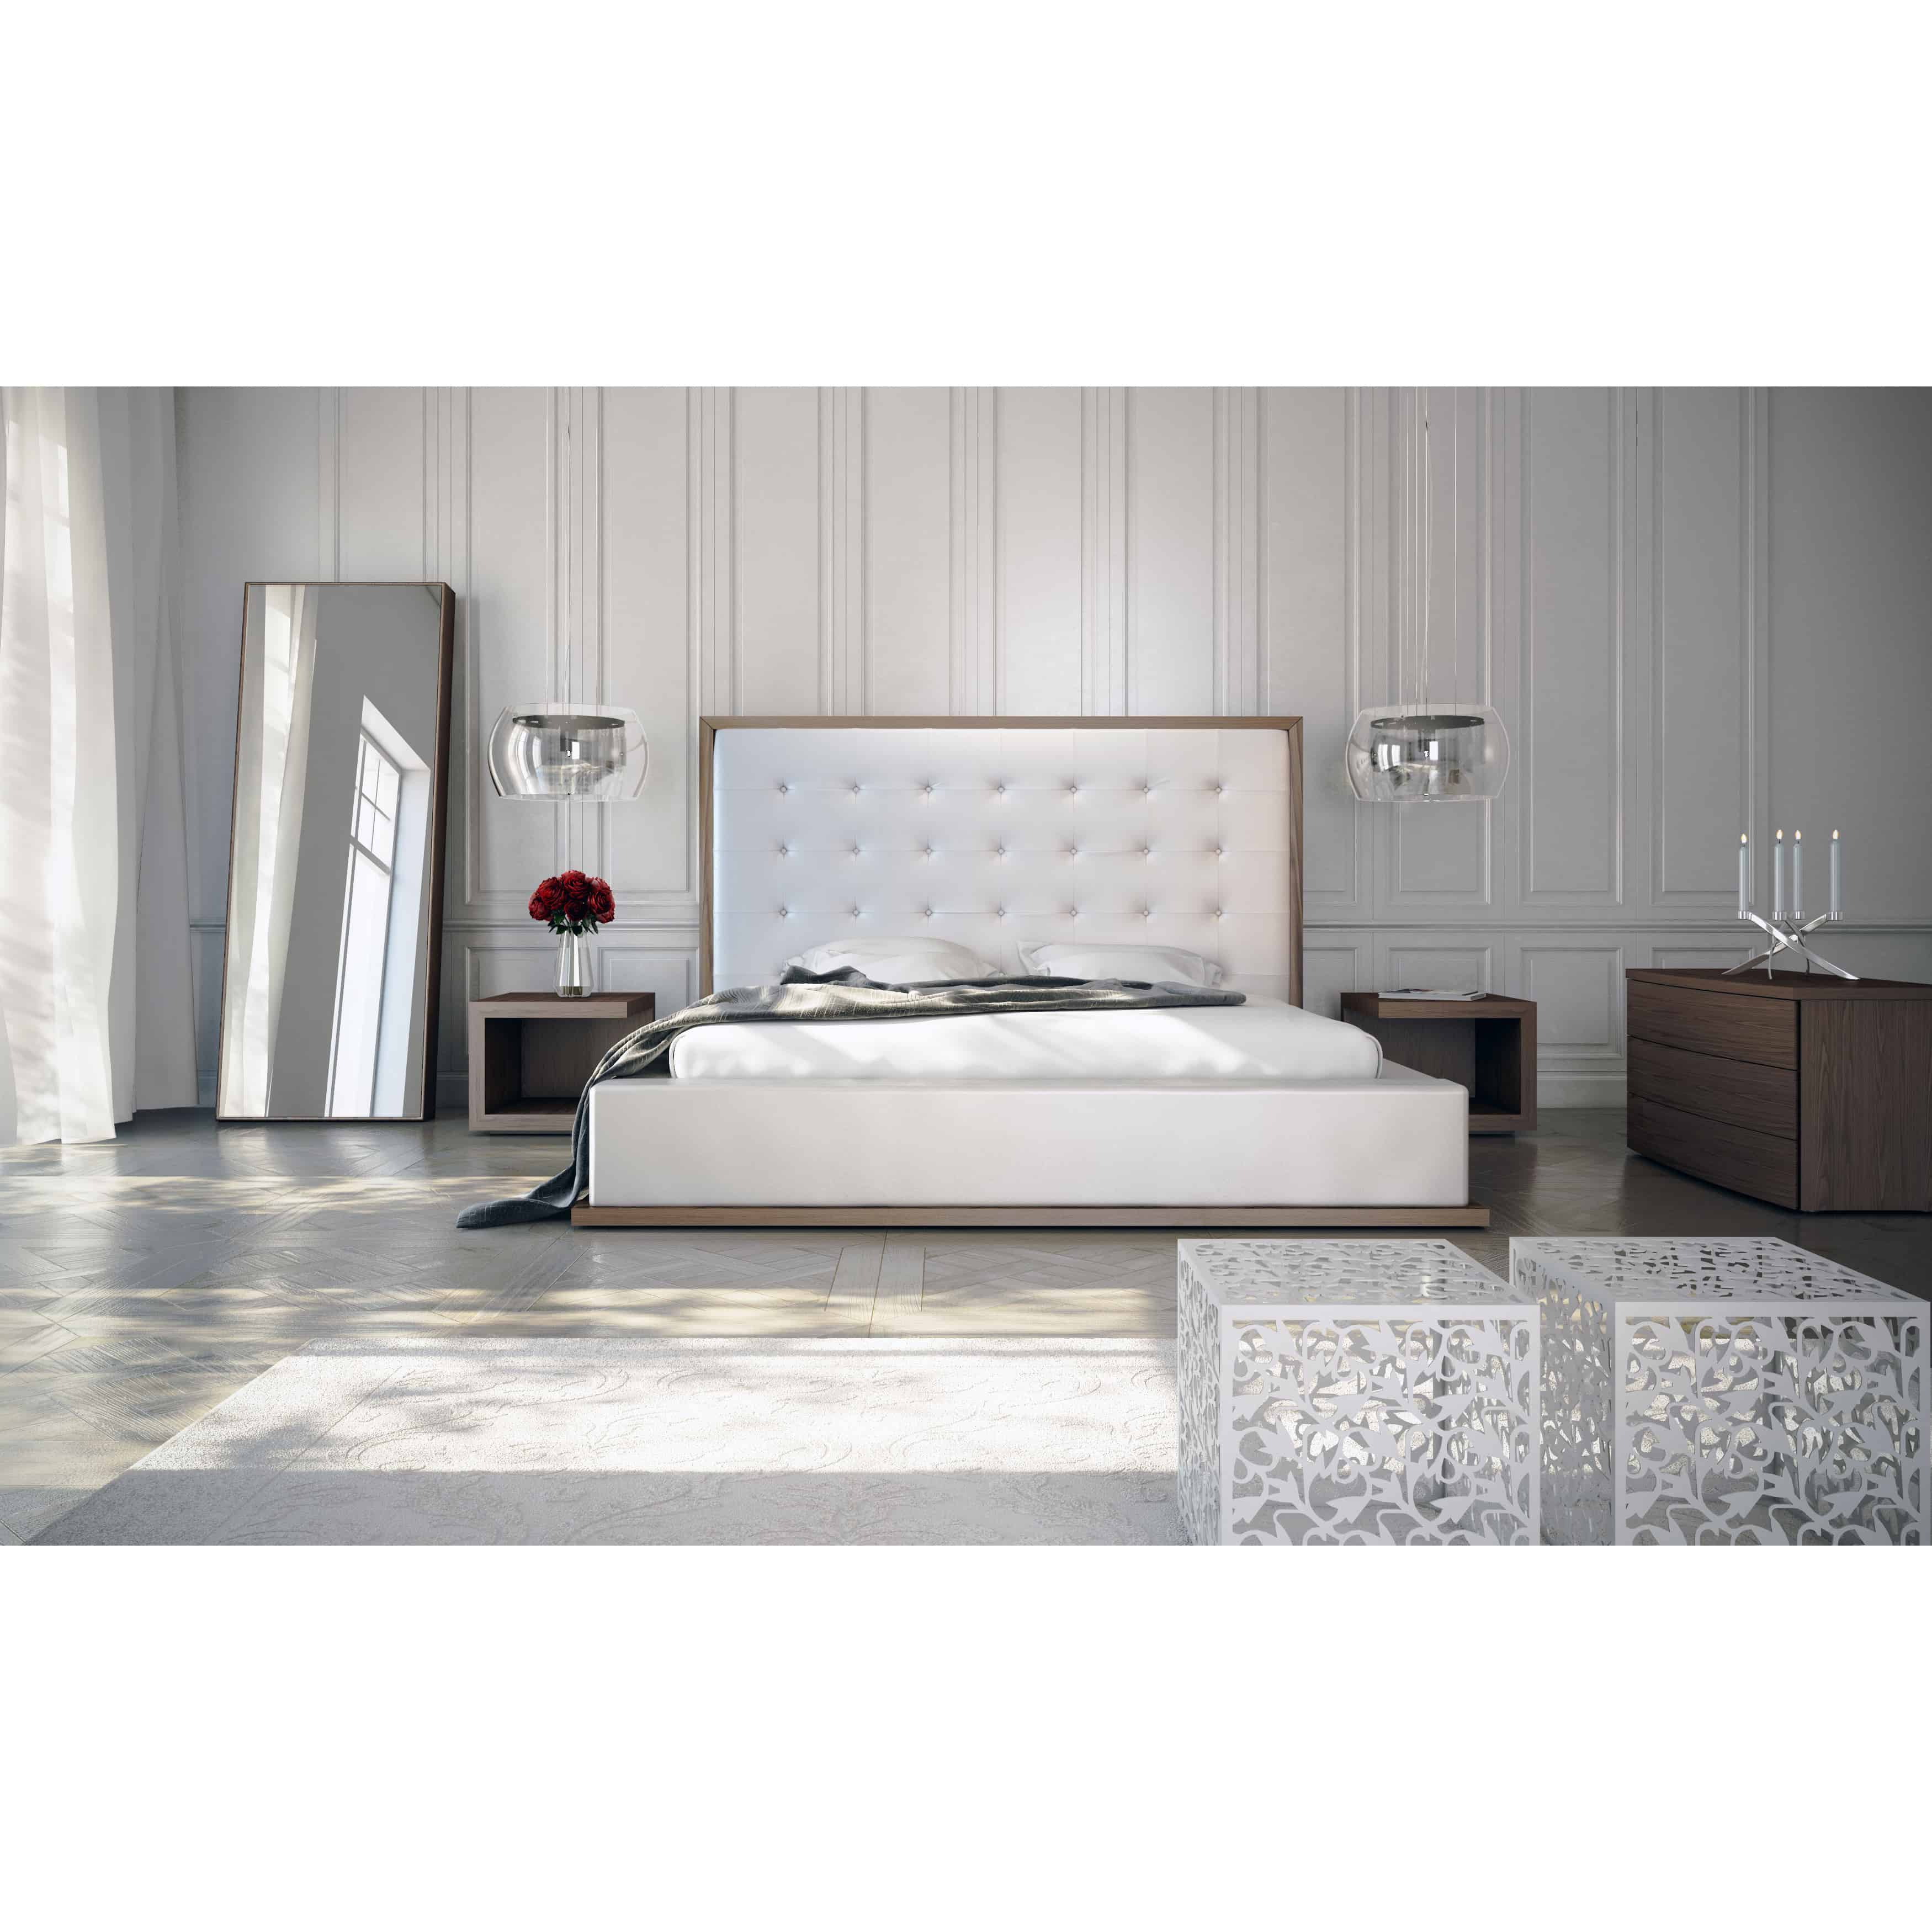 White and Wood Tufted Modern Bed